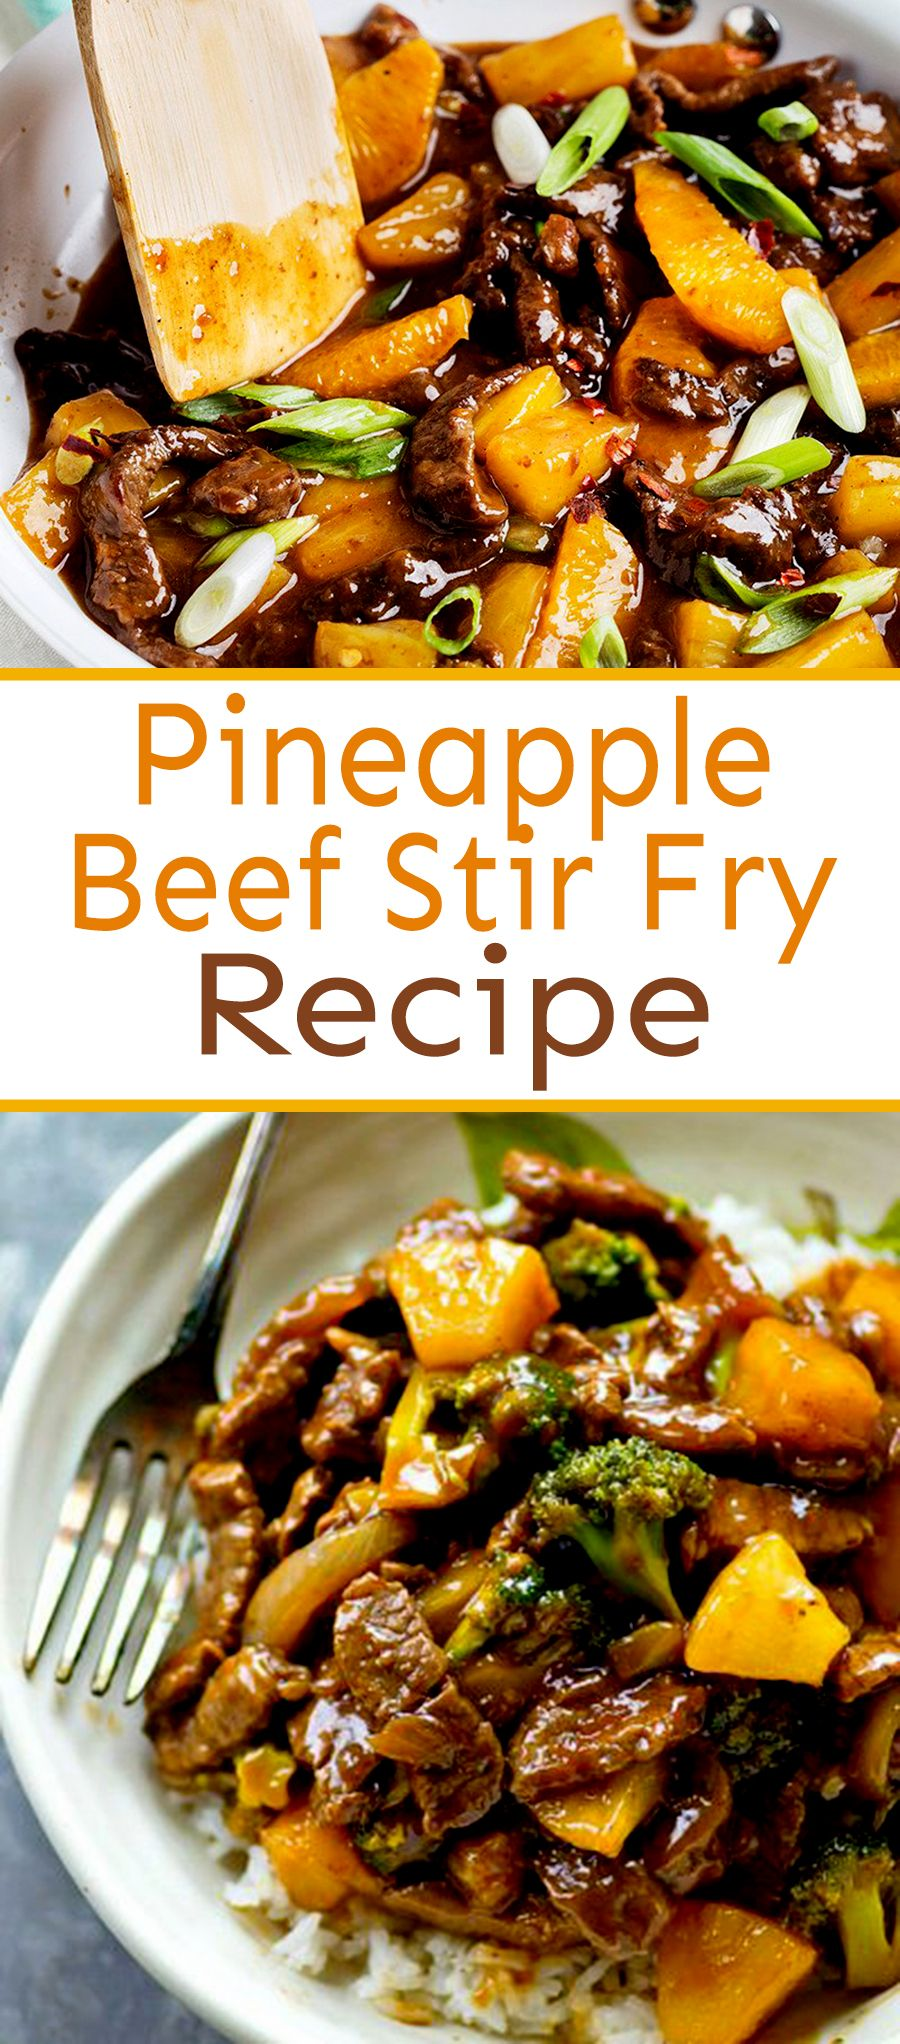 Pineapple Beef Stir Fry Recipe